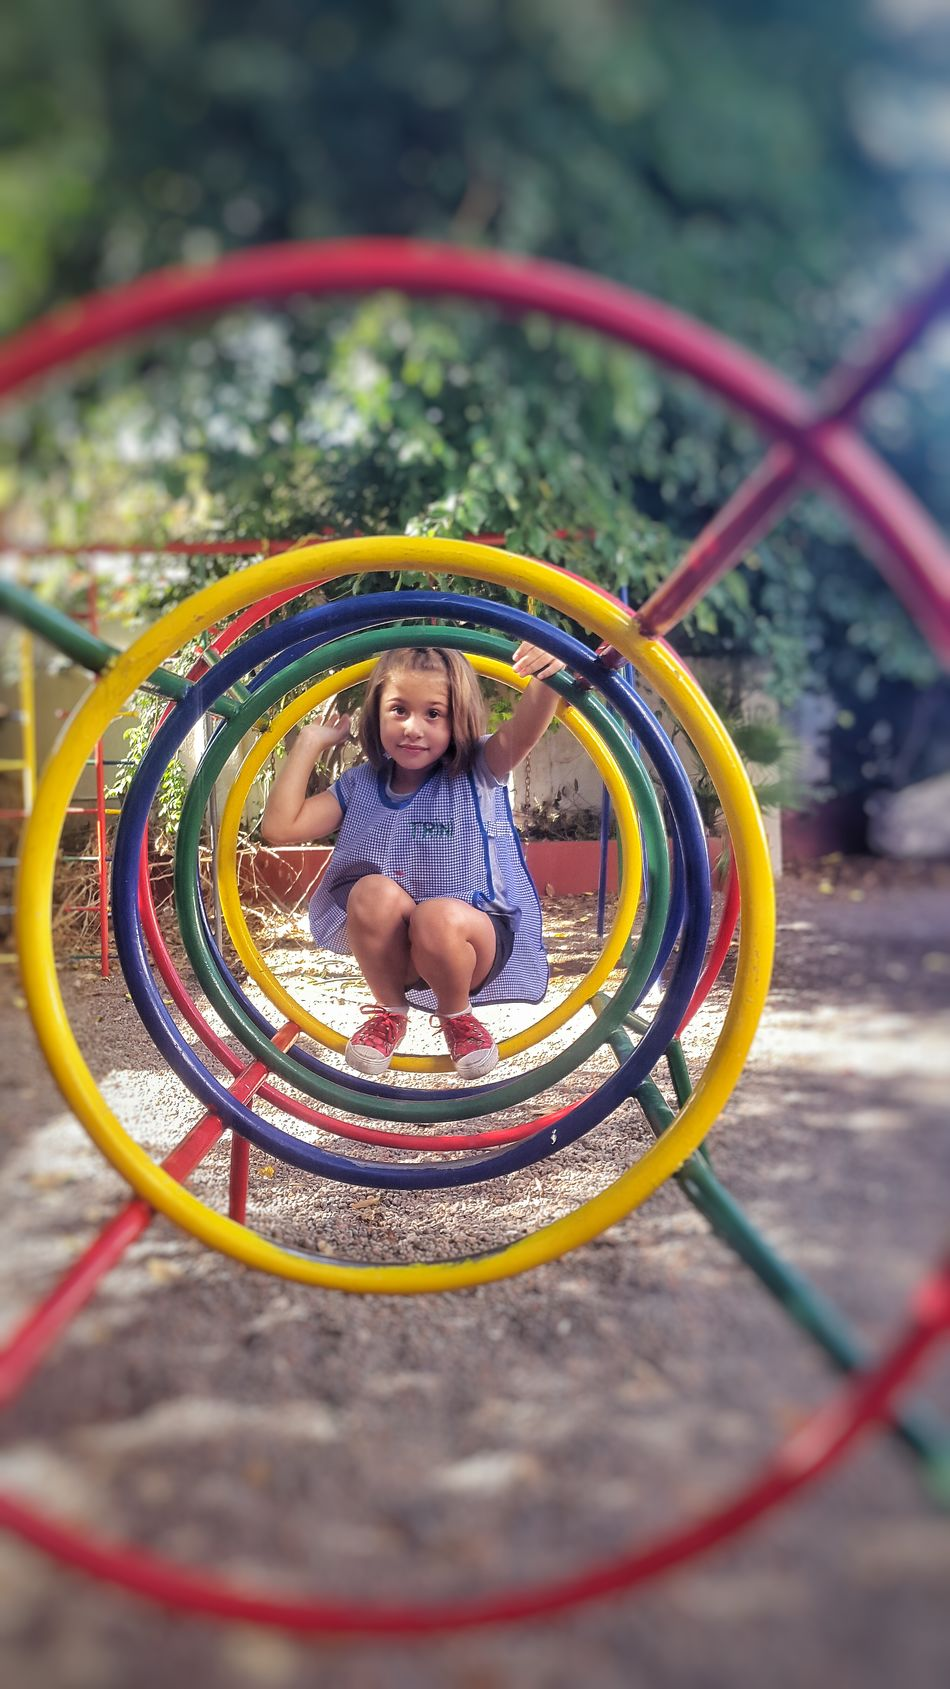 Beautiful Kid Kidsportrait Kidsphotography My Kids Are Awesome Kids Photography Kids Being Kids My Daughter My Daughter ♥ Little Girl Playing Playing Games Playground Kids Playground Having Fun Having Fun :) Elementary Age Kindergarten Kindergarden Kindergartner